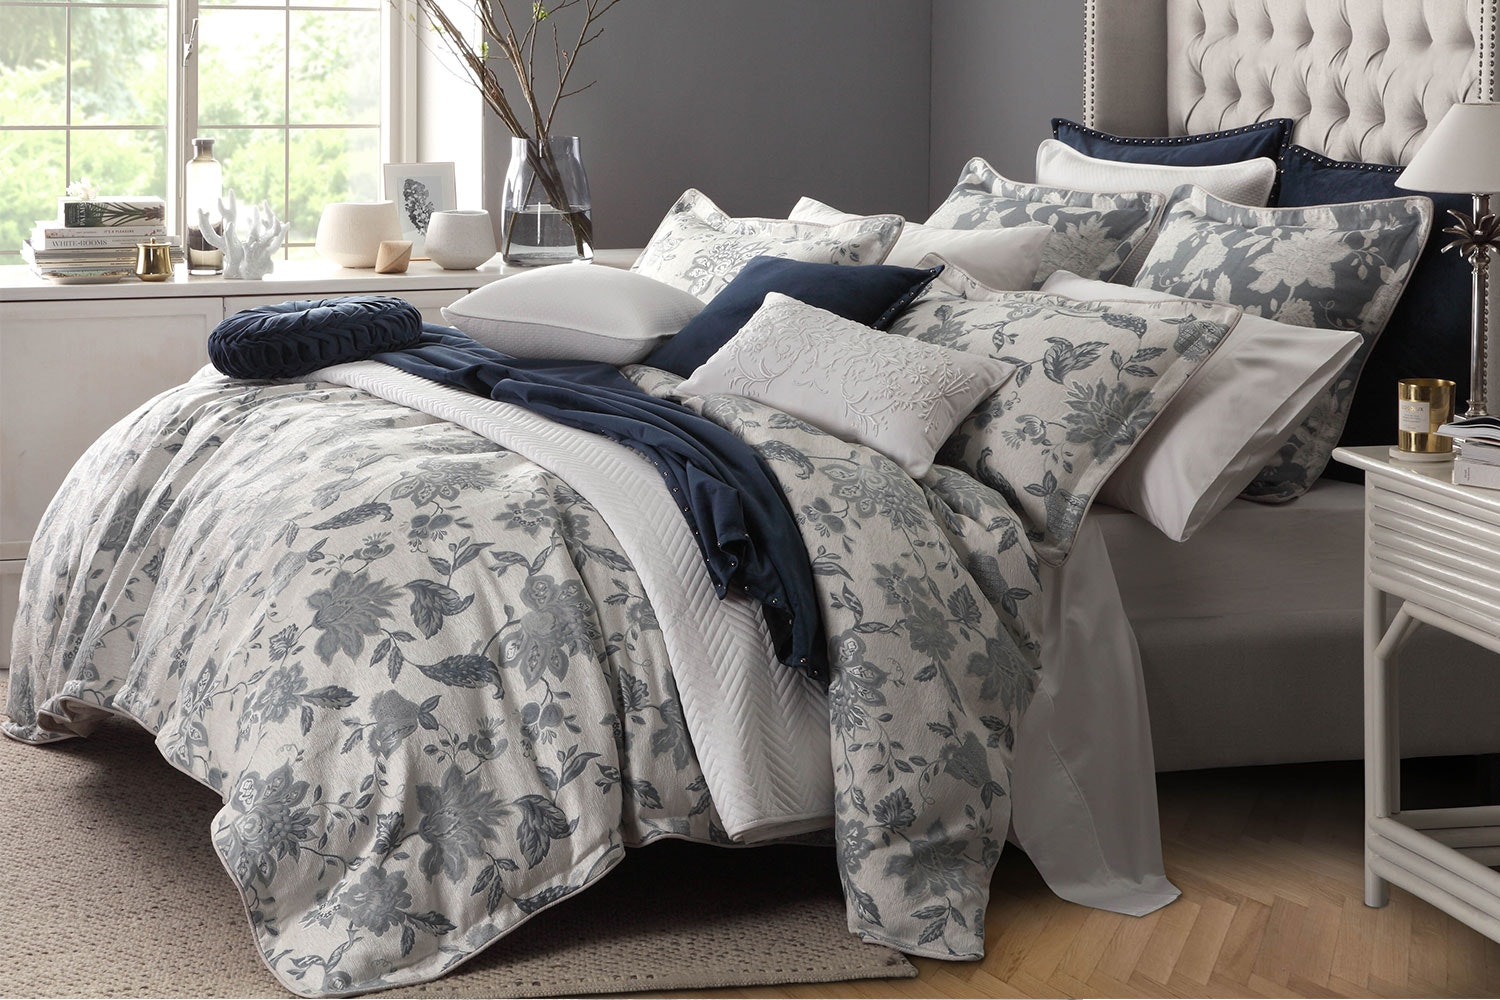 Chloe Spa Duvet Cover Set by Private Collection